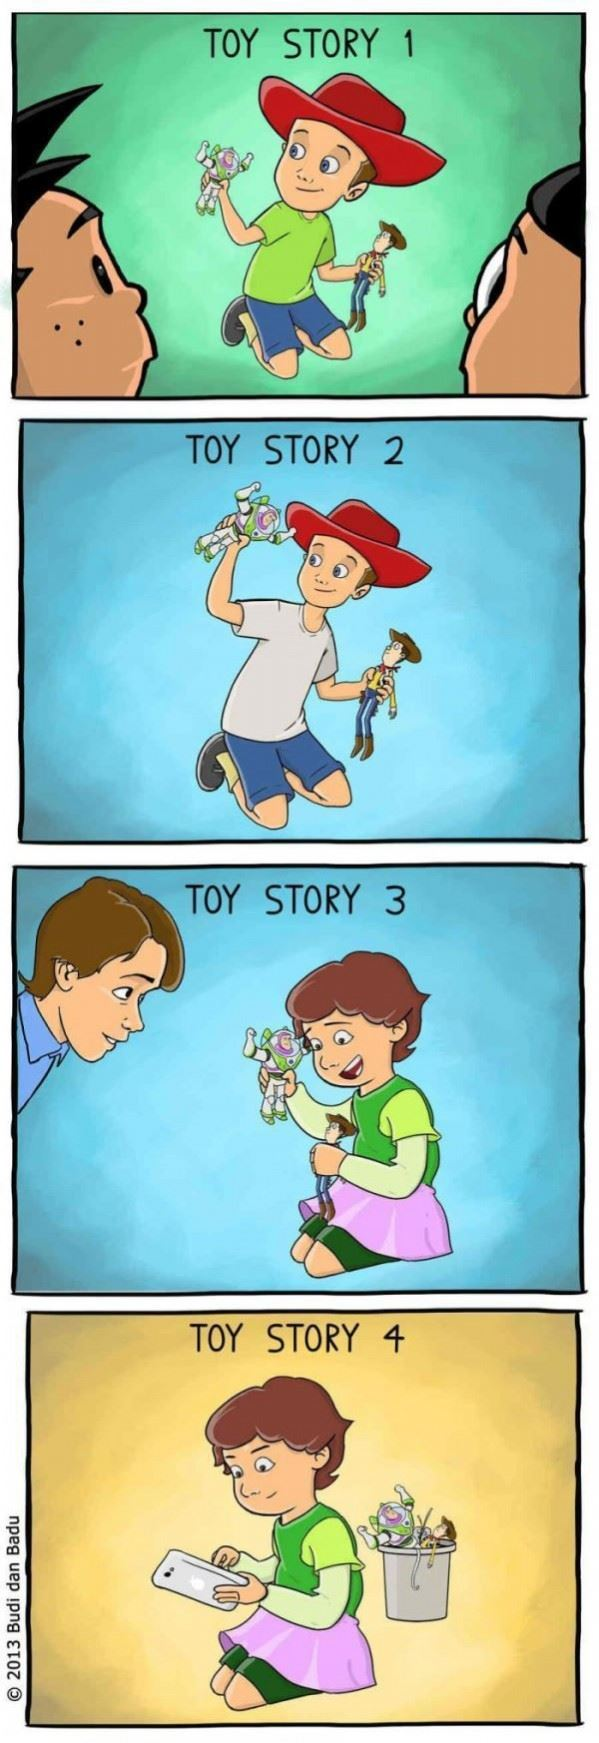 The evolution of Toy Story